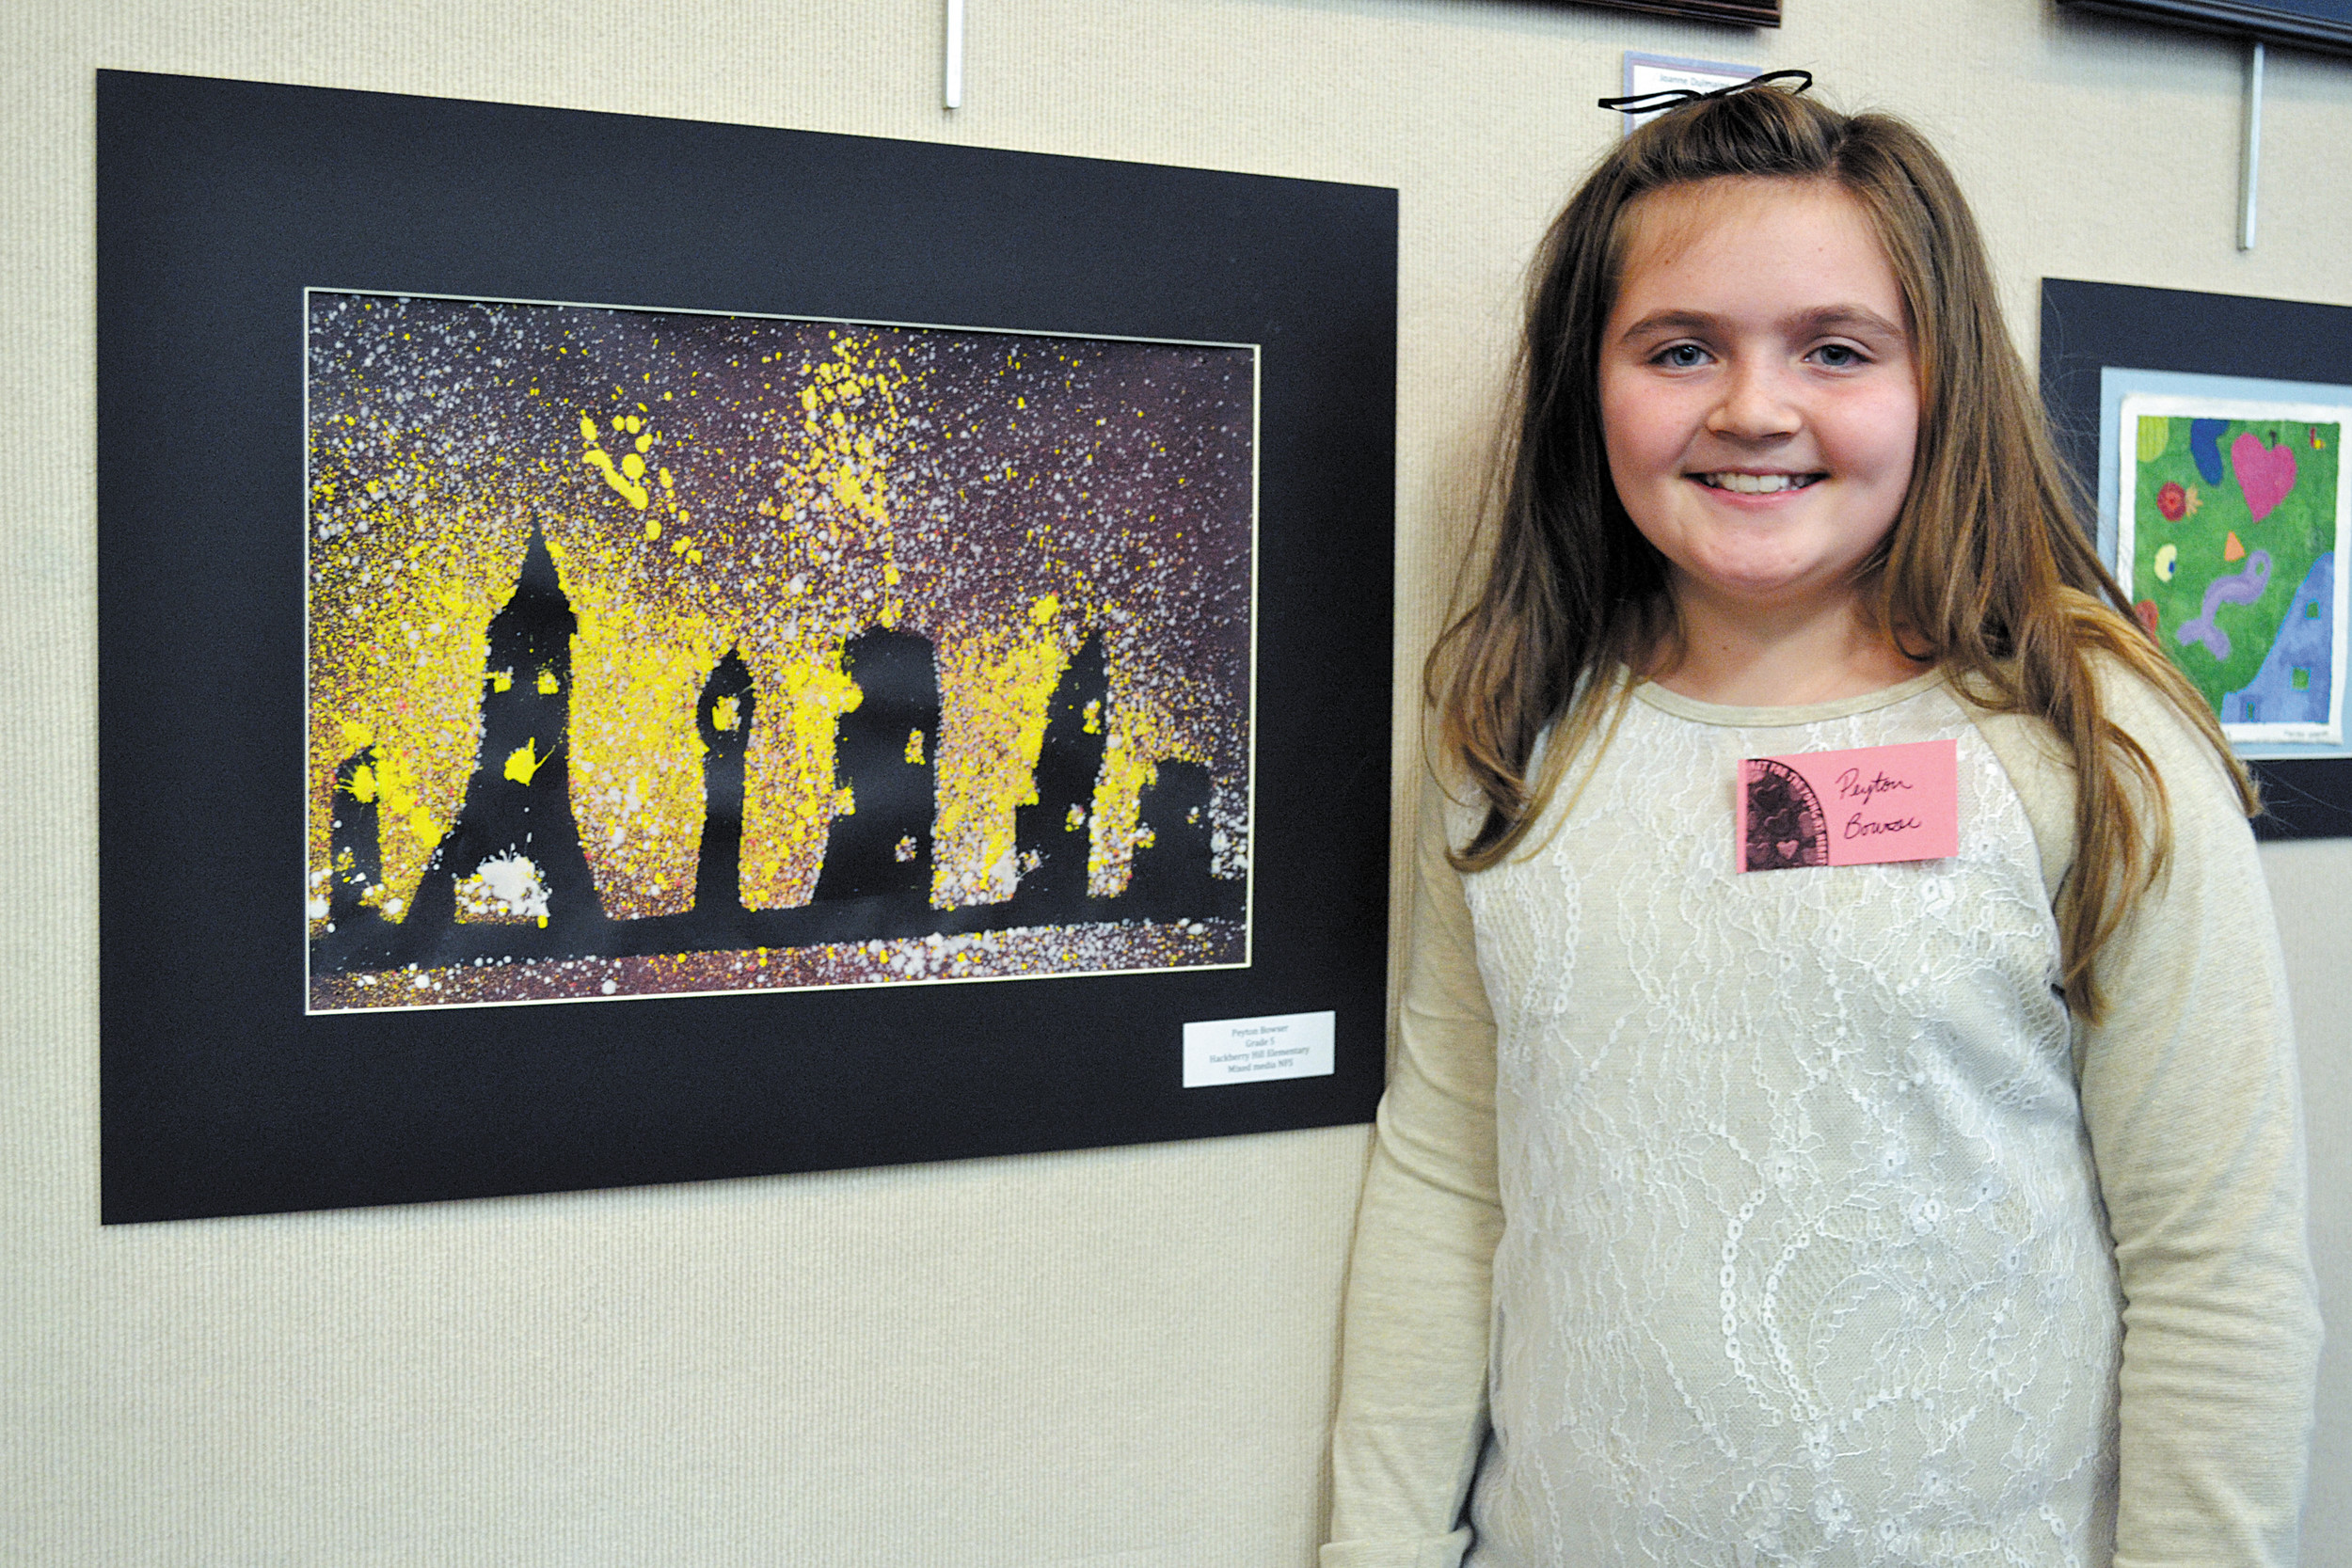 Peyton Bowser, a fifth-grade student at Hackberry Hill Elementary School, stands next to her purple and black cityscape artwork at the Art for the Young at Heart Artist Reception, Feb. 12.